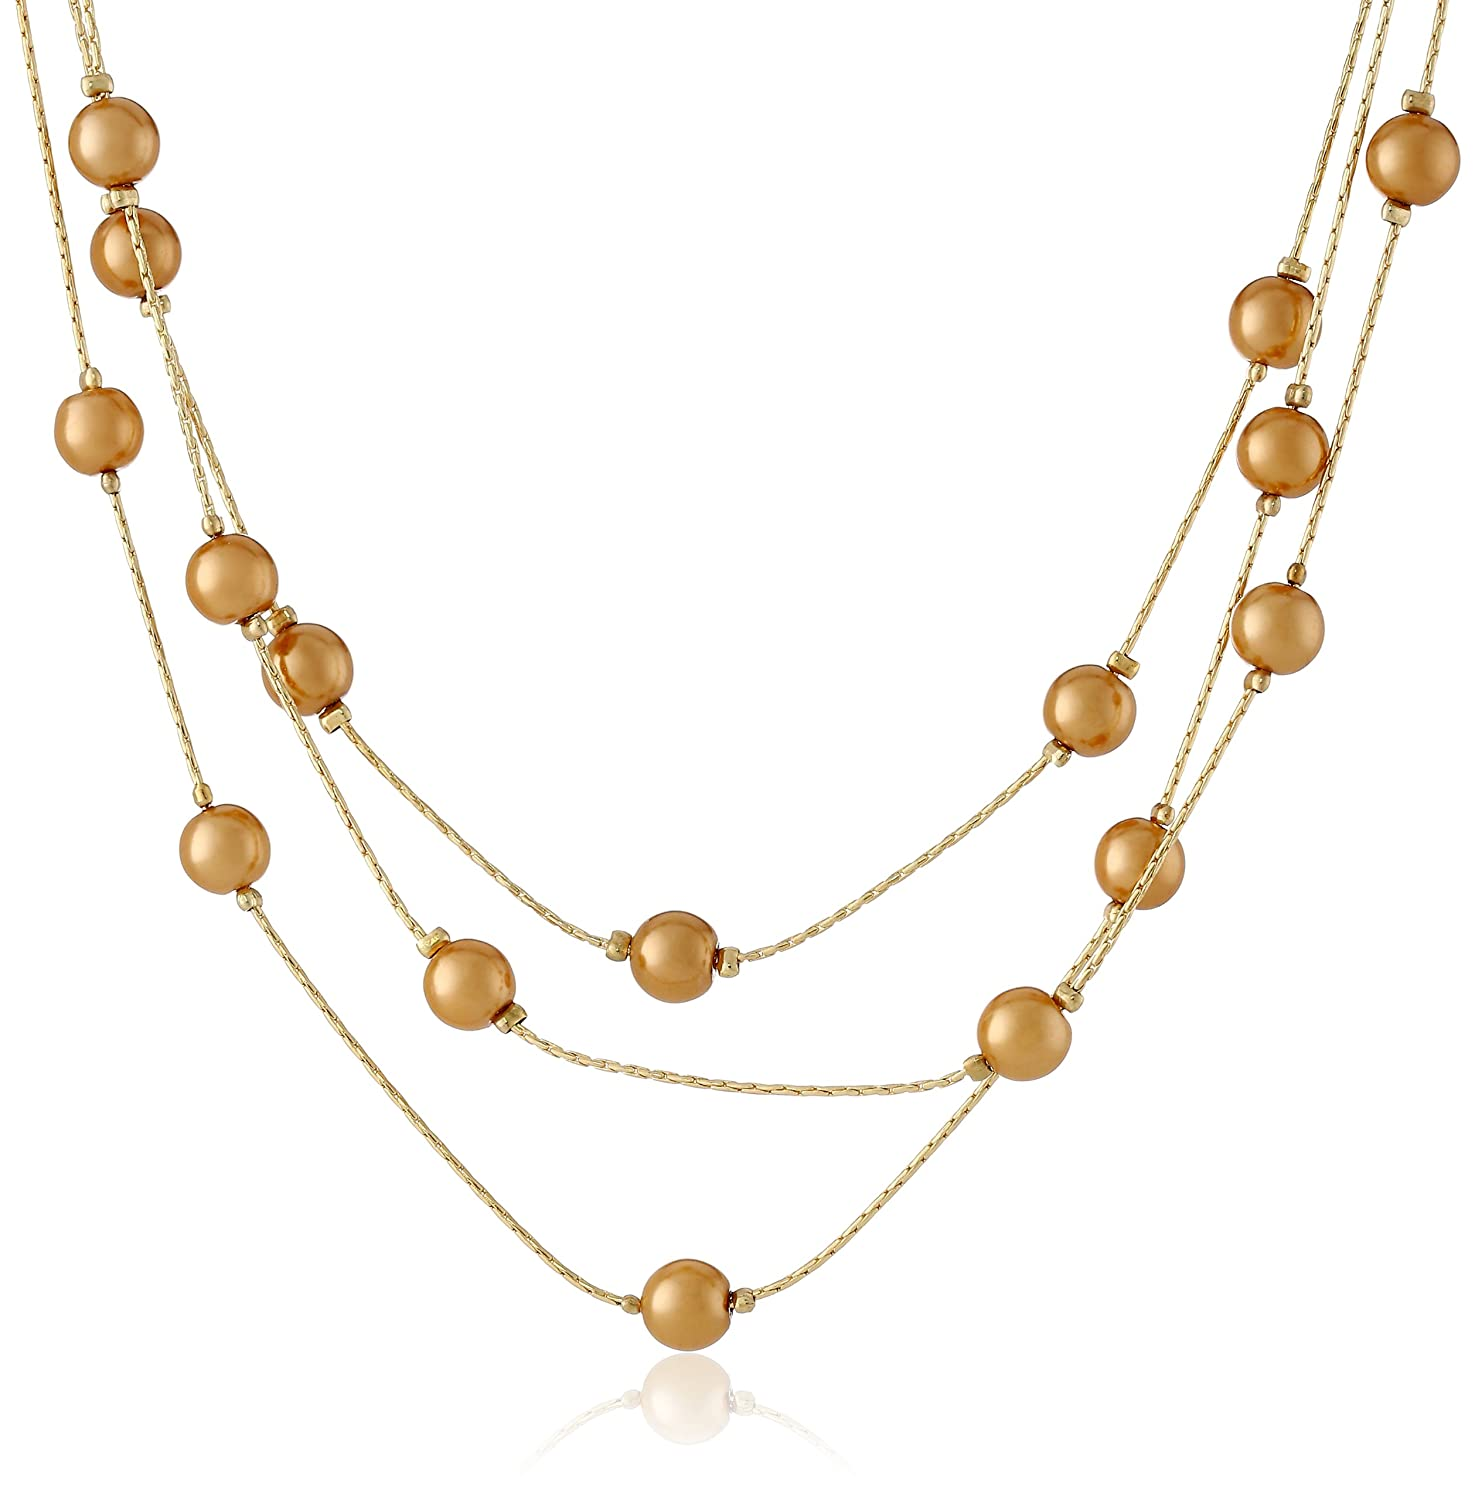 Signature 1928 Collection Adjustable Strandage Necklace, 16